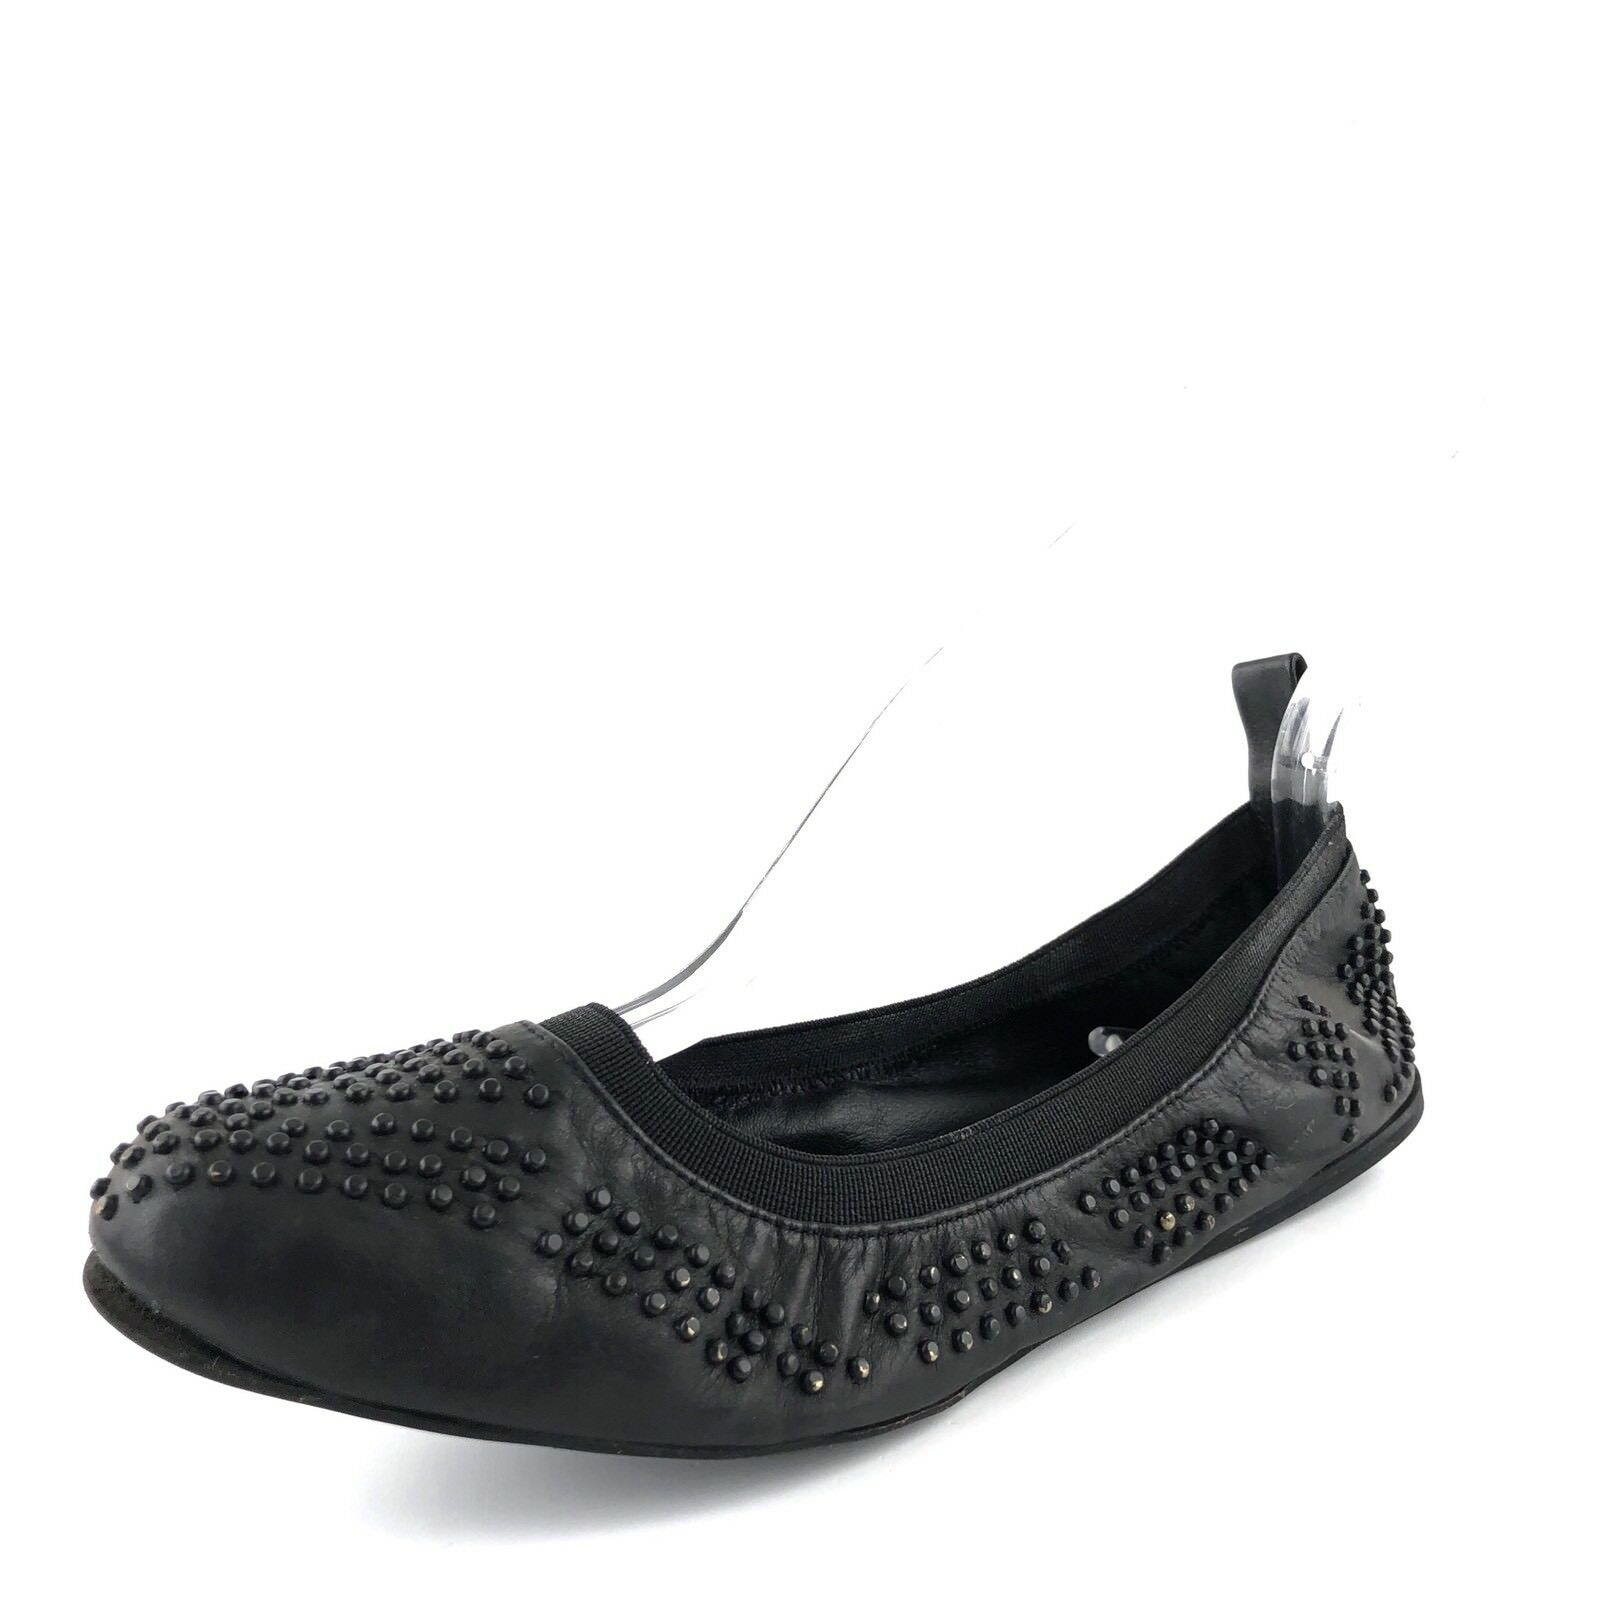 New See By Chloe Black Leather Studded Ballet Flats Women's Size 37.5 M